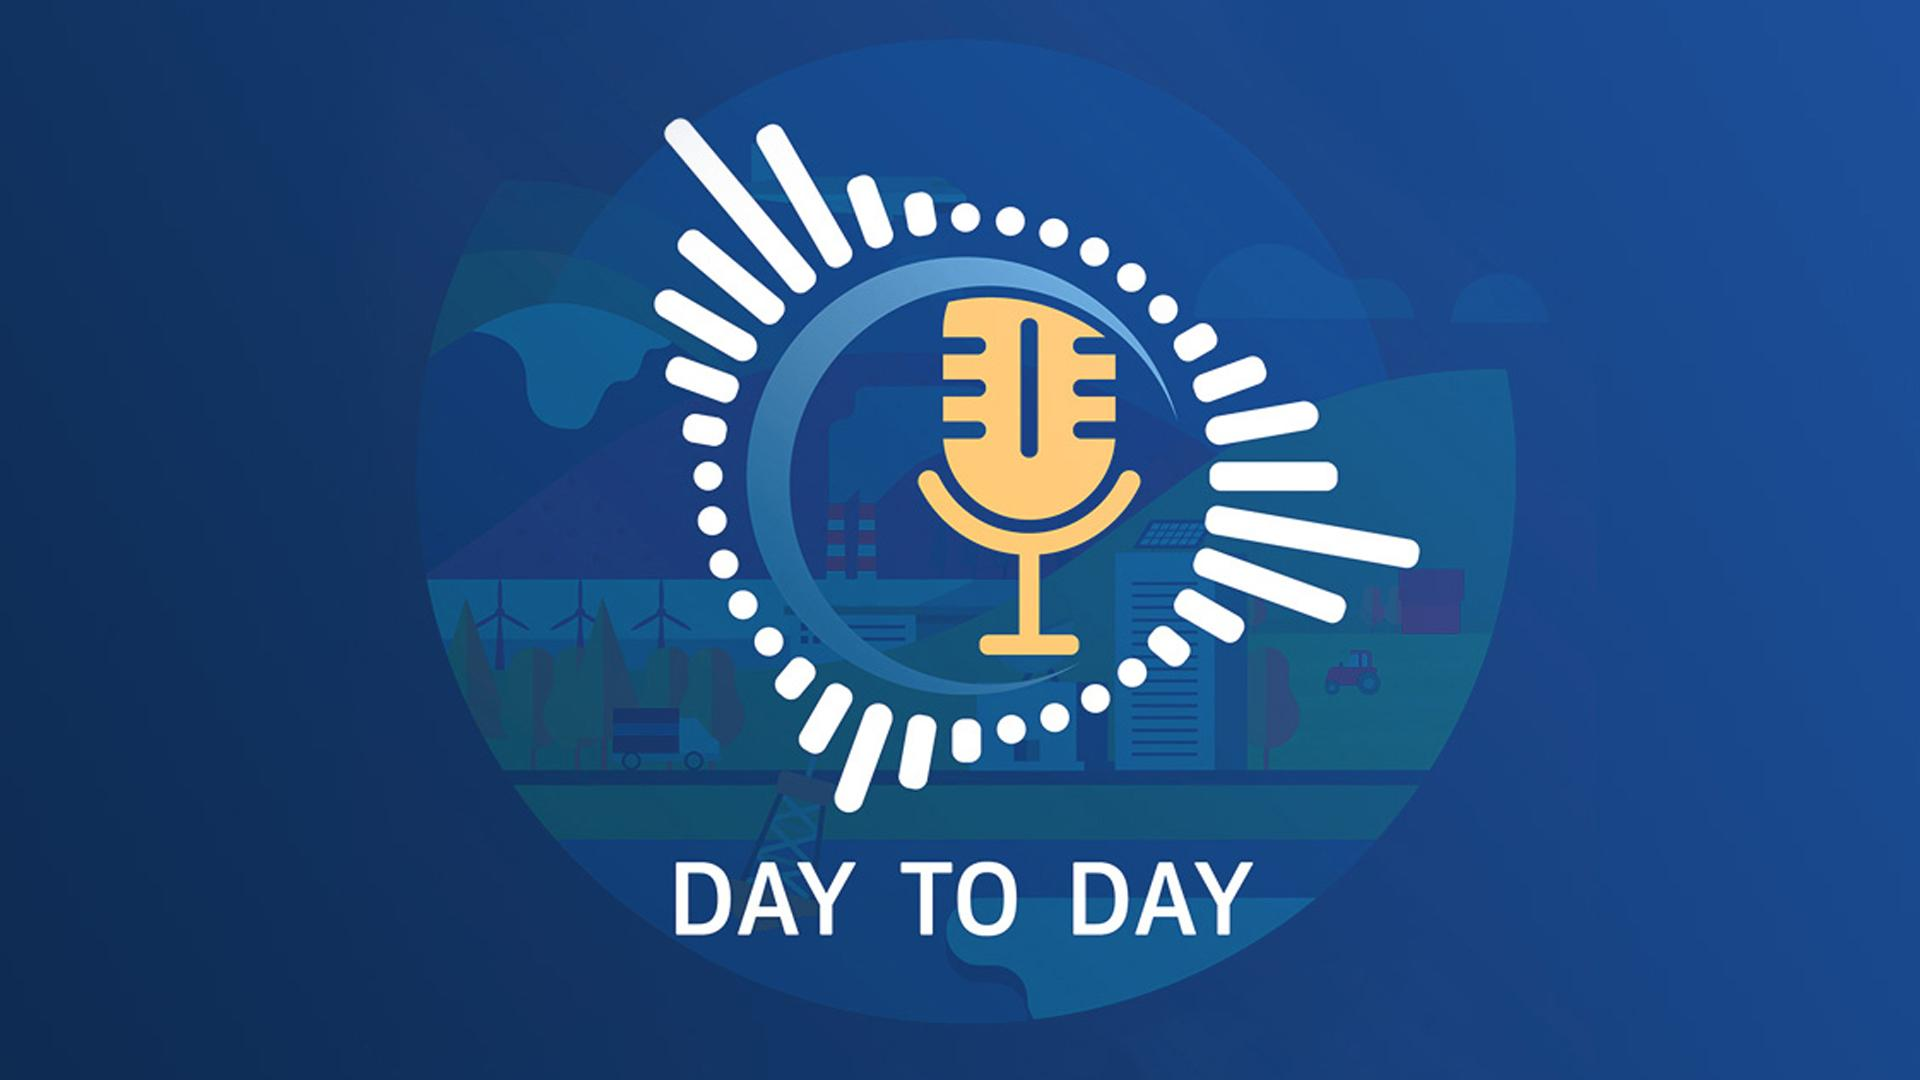 Introducing Day to Day, EUMETSAT's first podcast series!